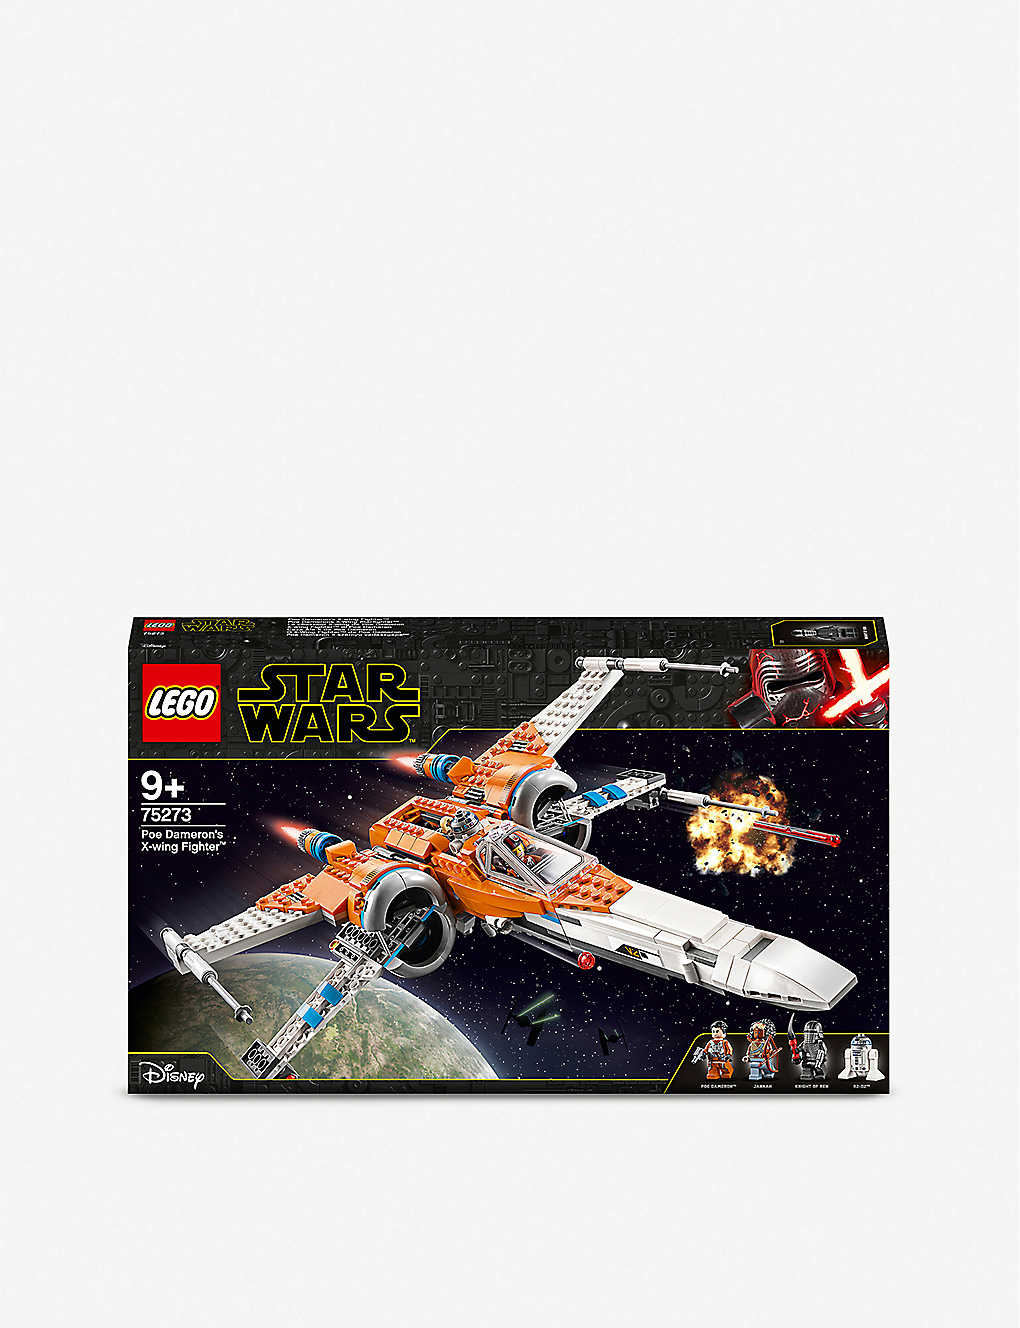 LEGO: LEGO® Star Wars 75273 Poe Dameron's X-wing Fighter set